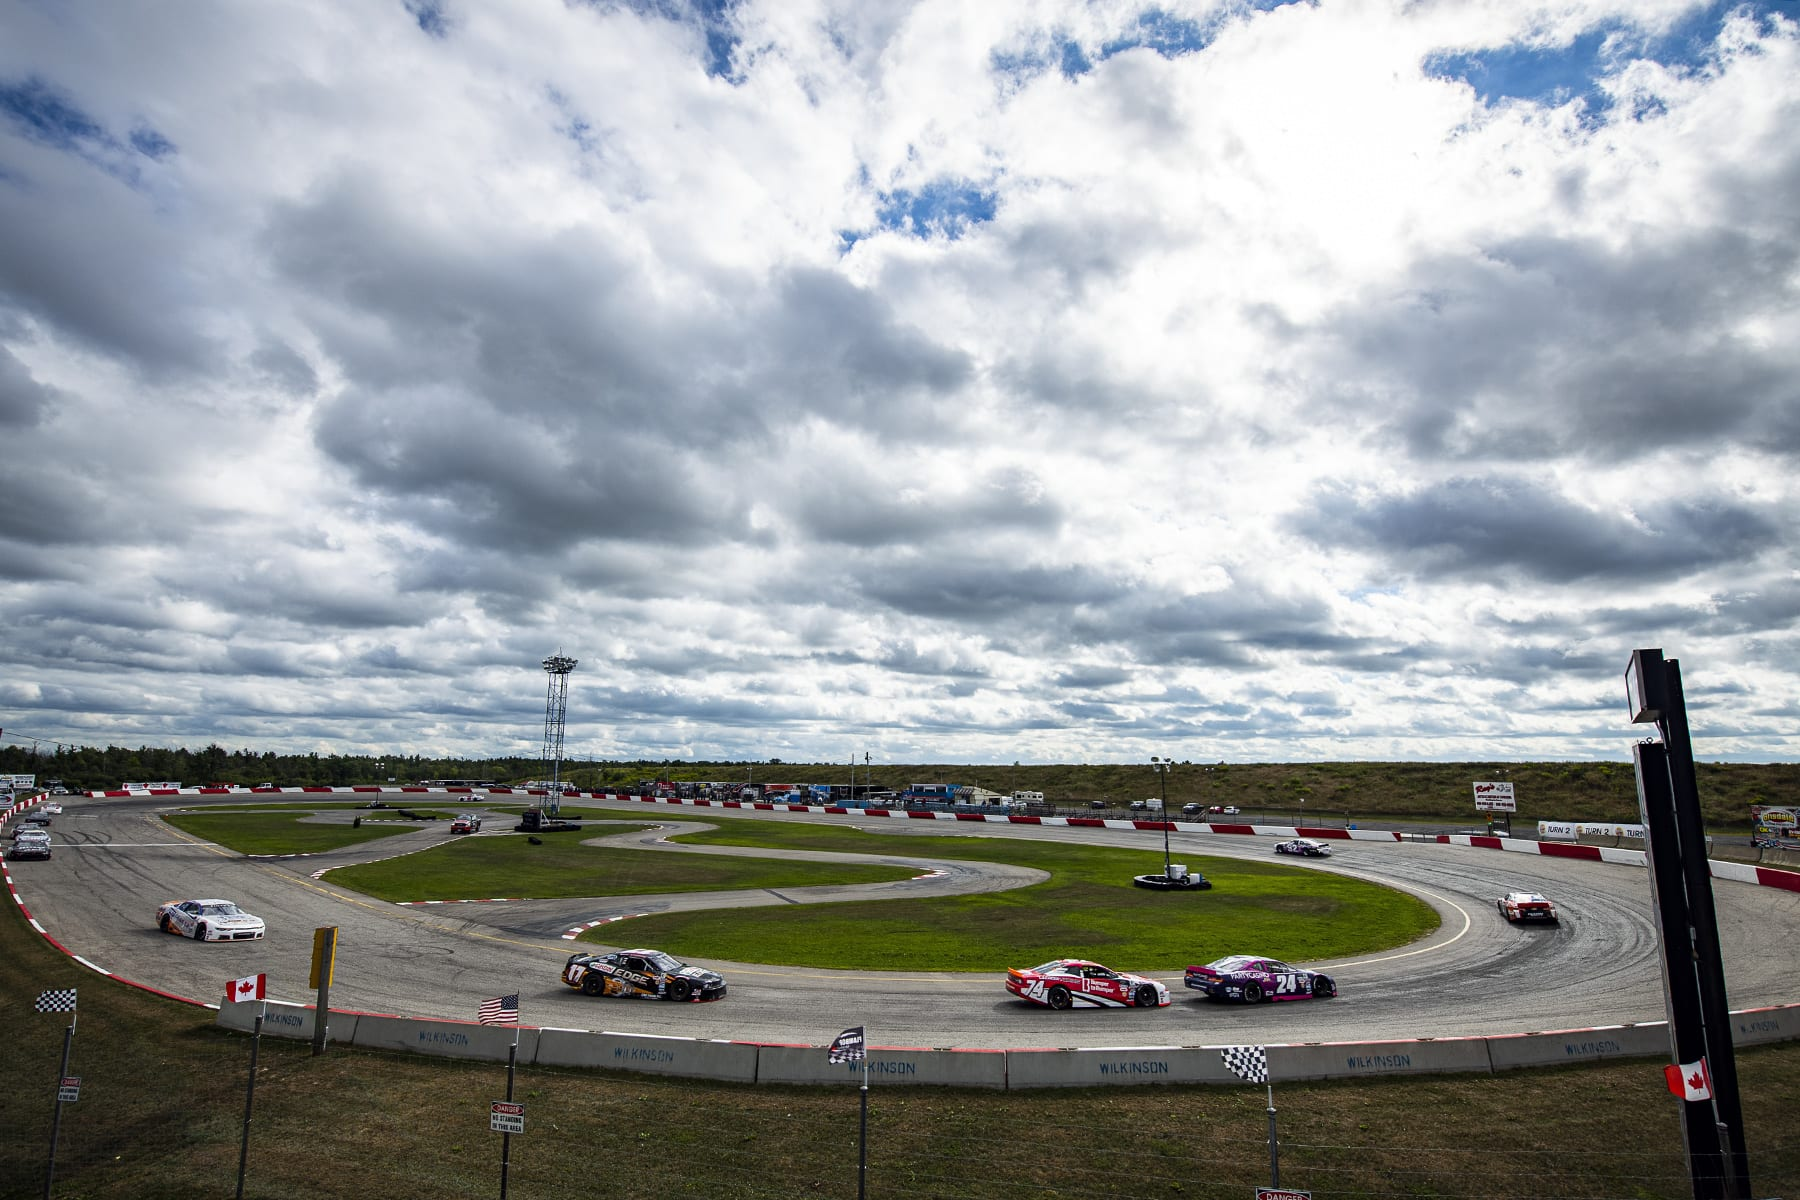 HAMILTON, ON - AUGUST 29: The NASCAR Pinty's series at Flamboro Speedway in Hamilton, Ontario, Canada on Saturday, August 29, 2020. (Photo by Matthew Manor/NASCAR)